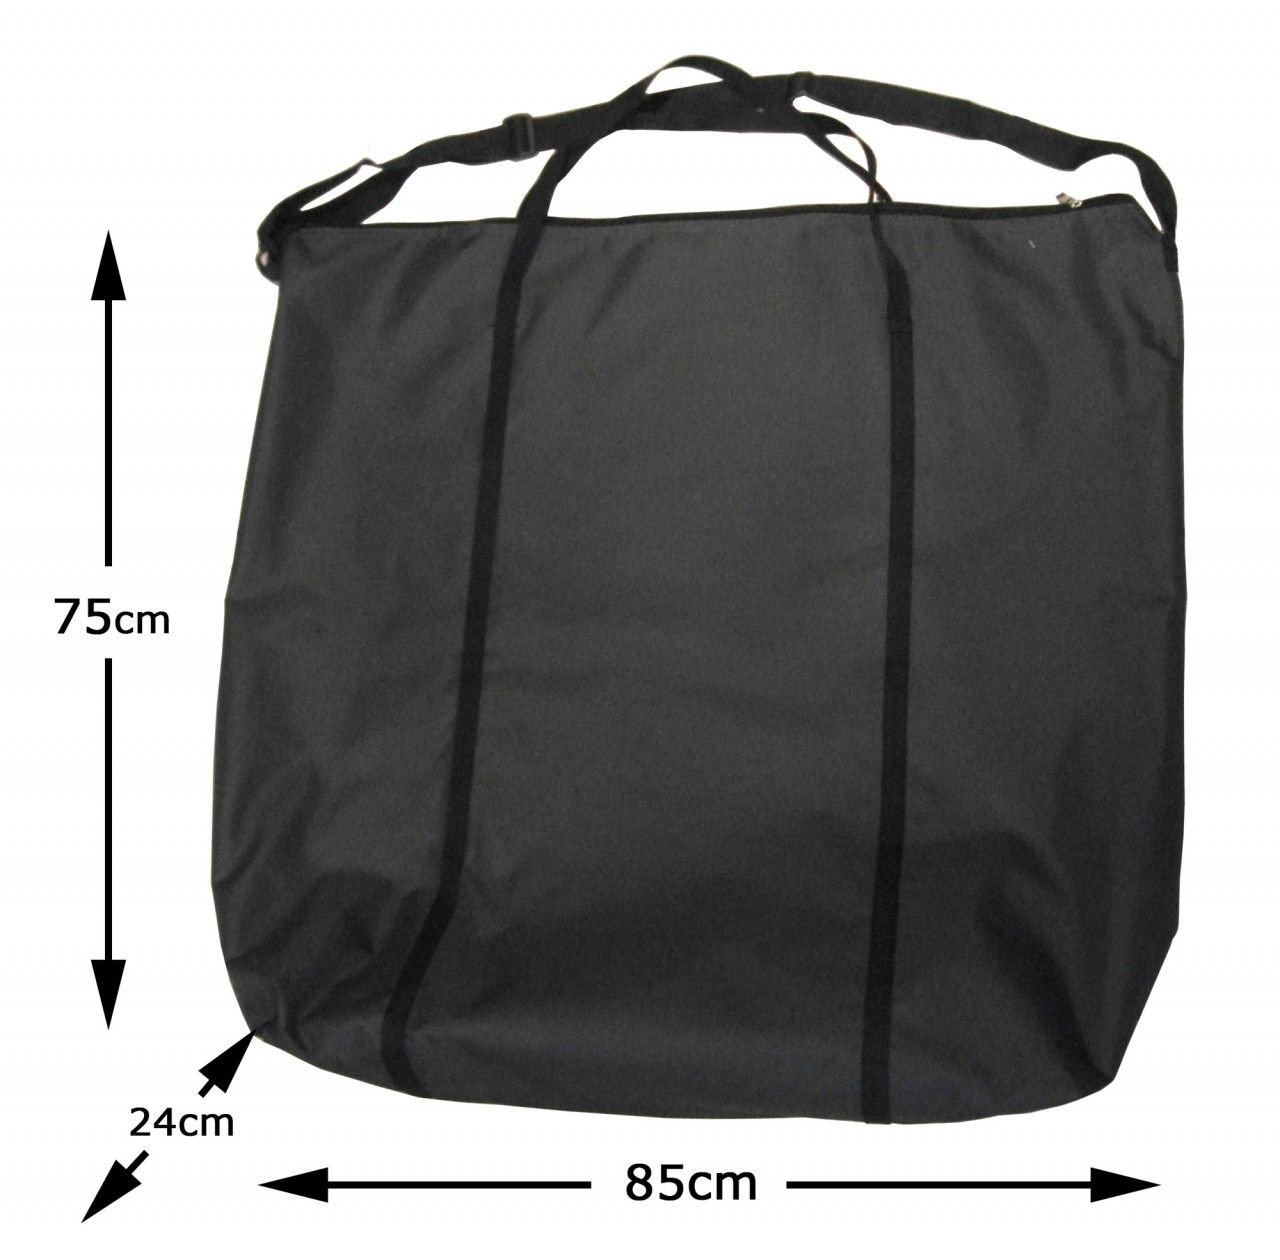 Borsa Porta Lettino Carpfishing - BedChair Bag Carpfishing MDI con manici